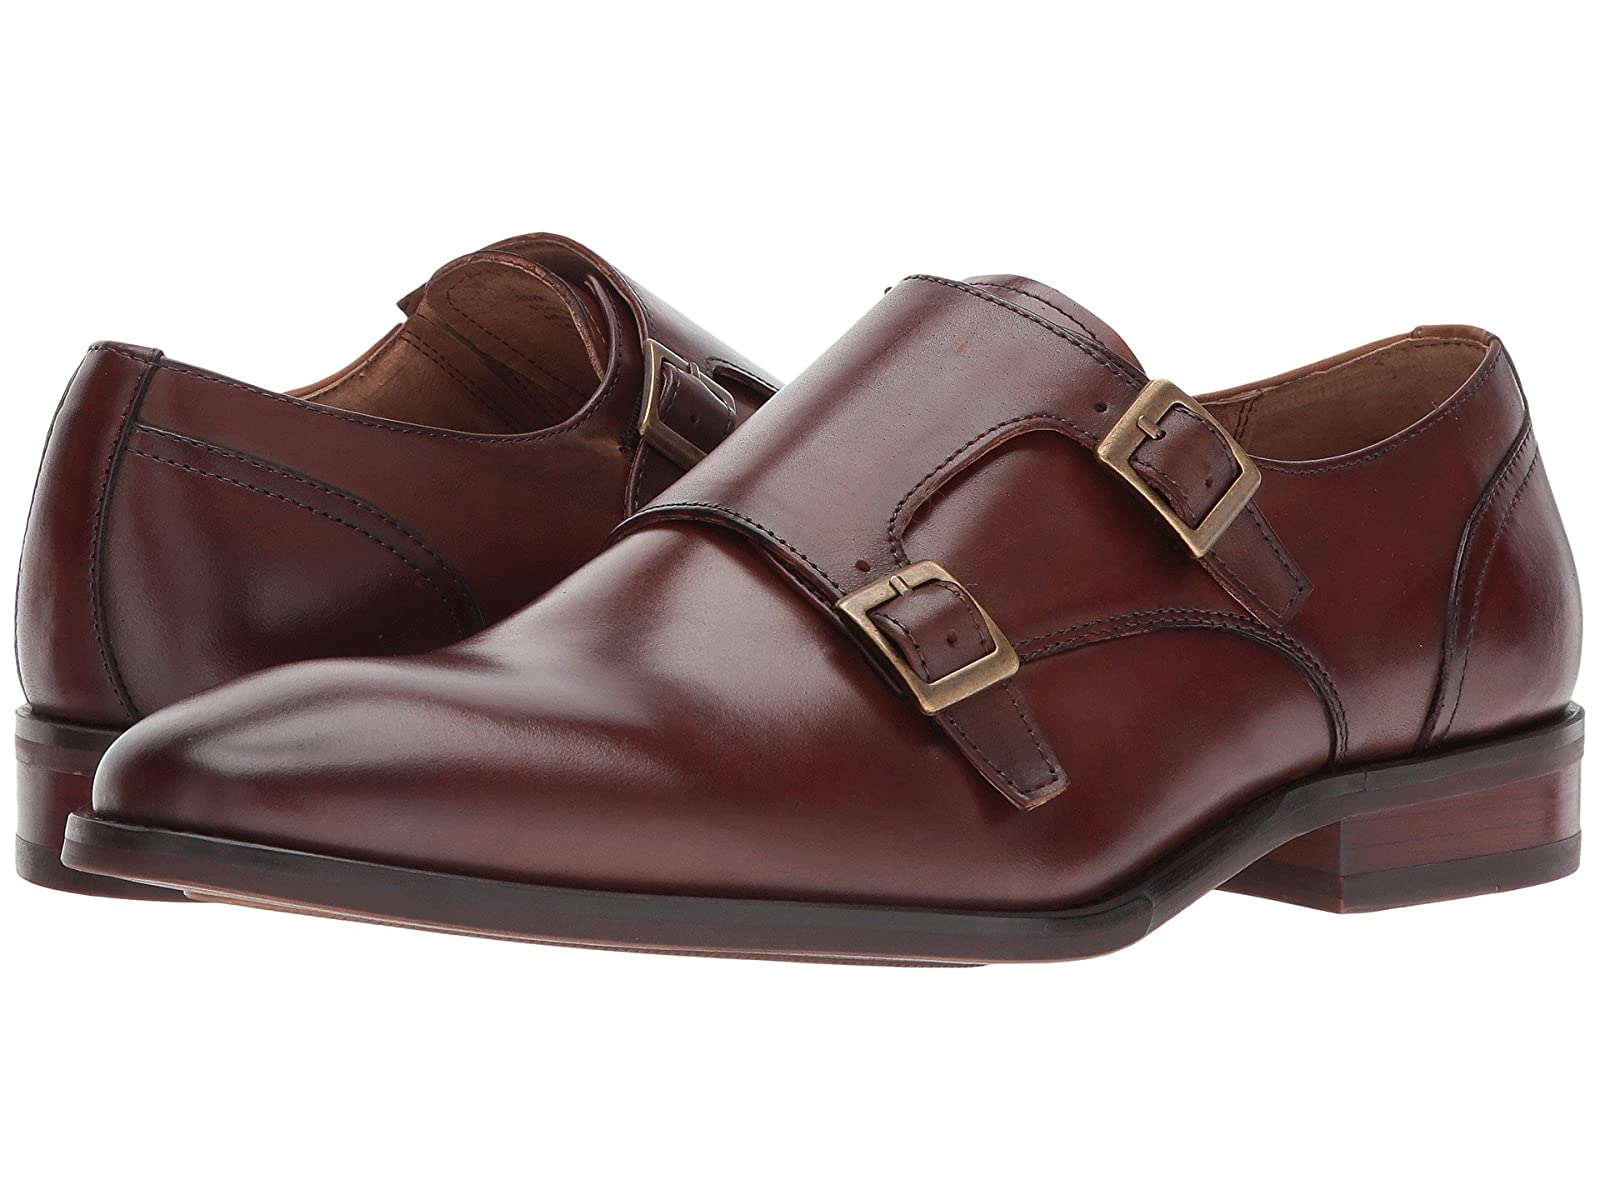 Steve Madden ElvinCheap and distinctive eye-catching shoes